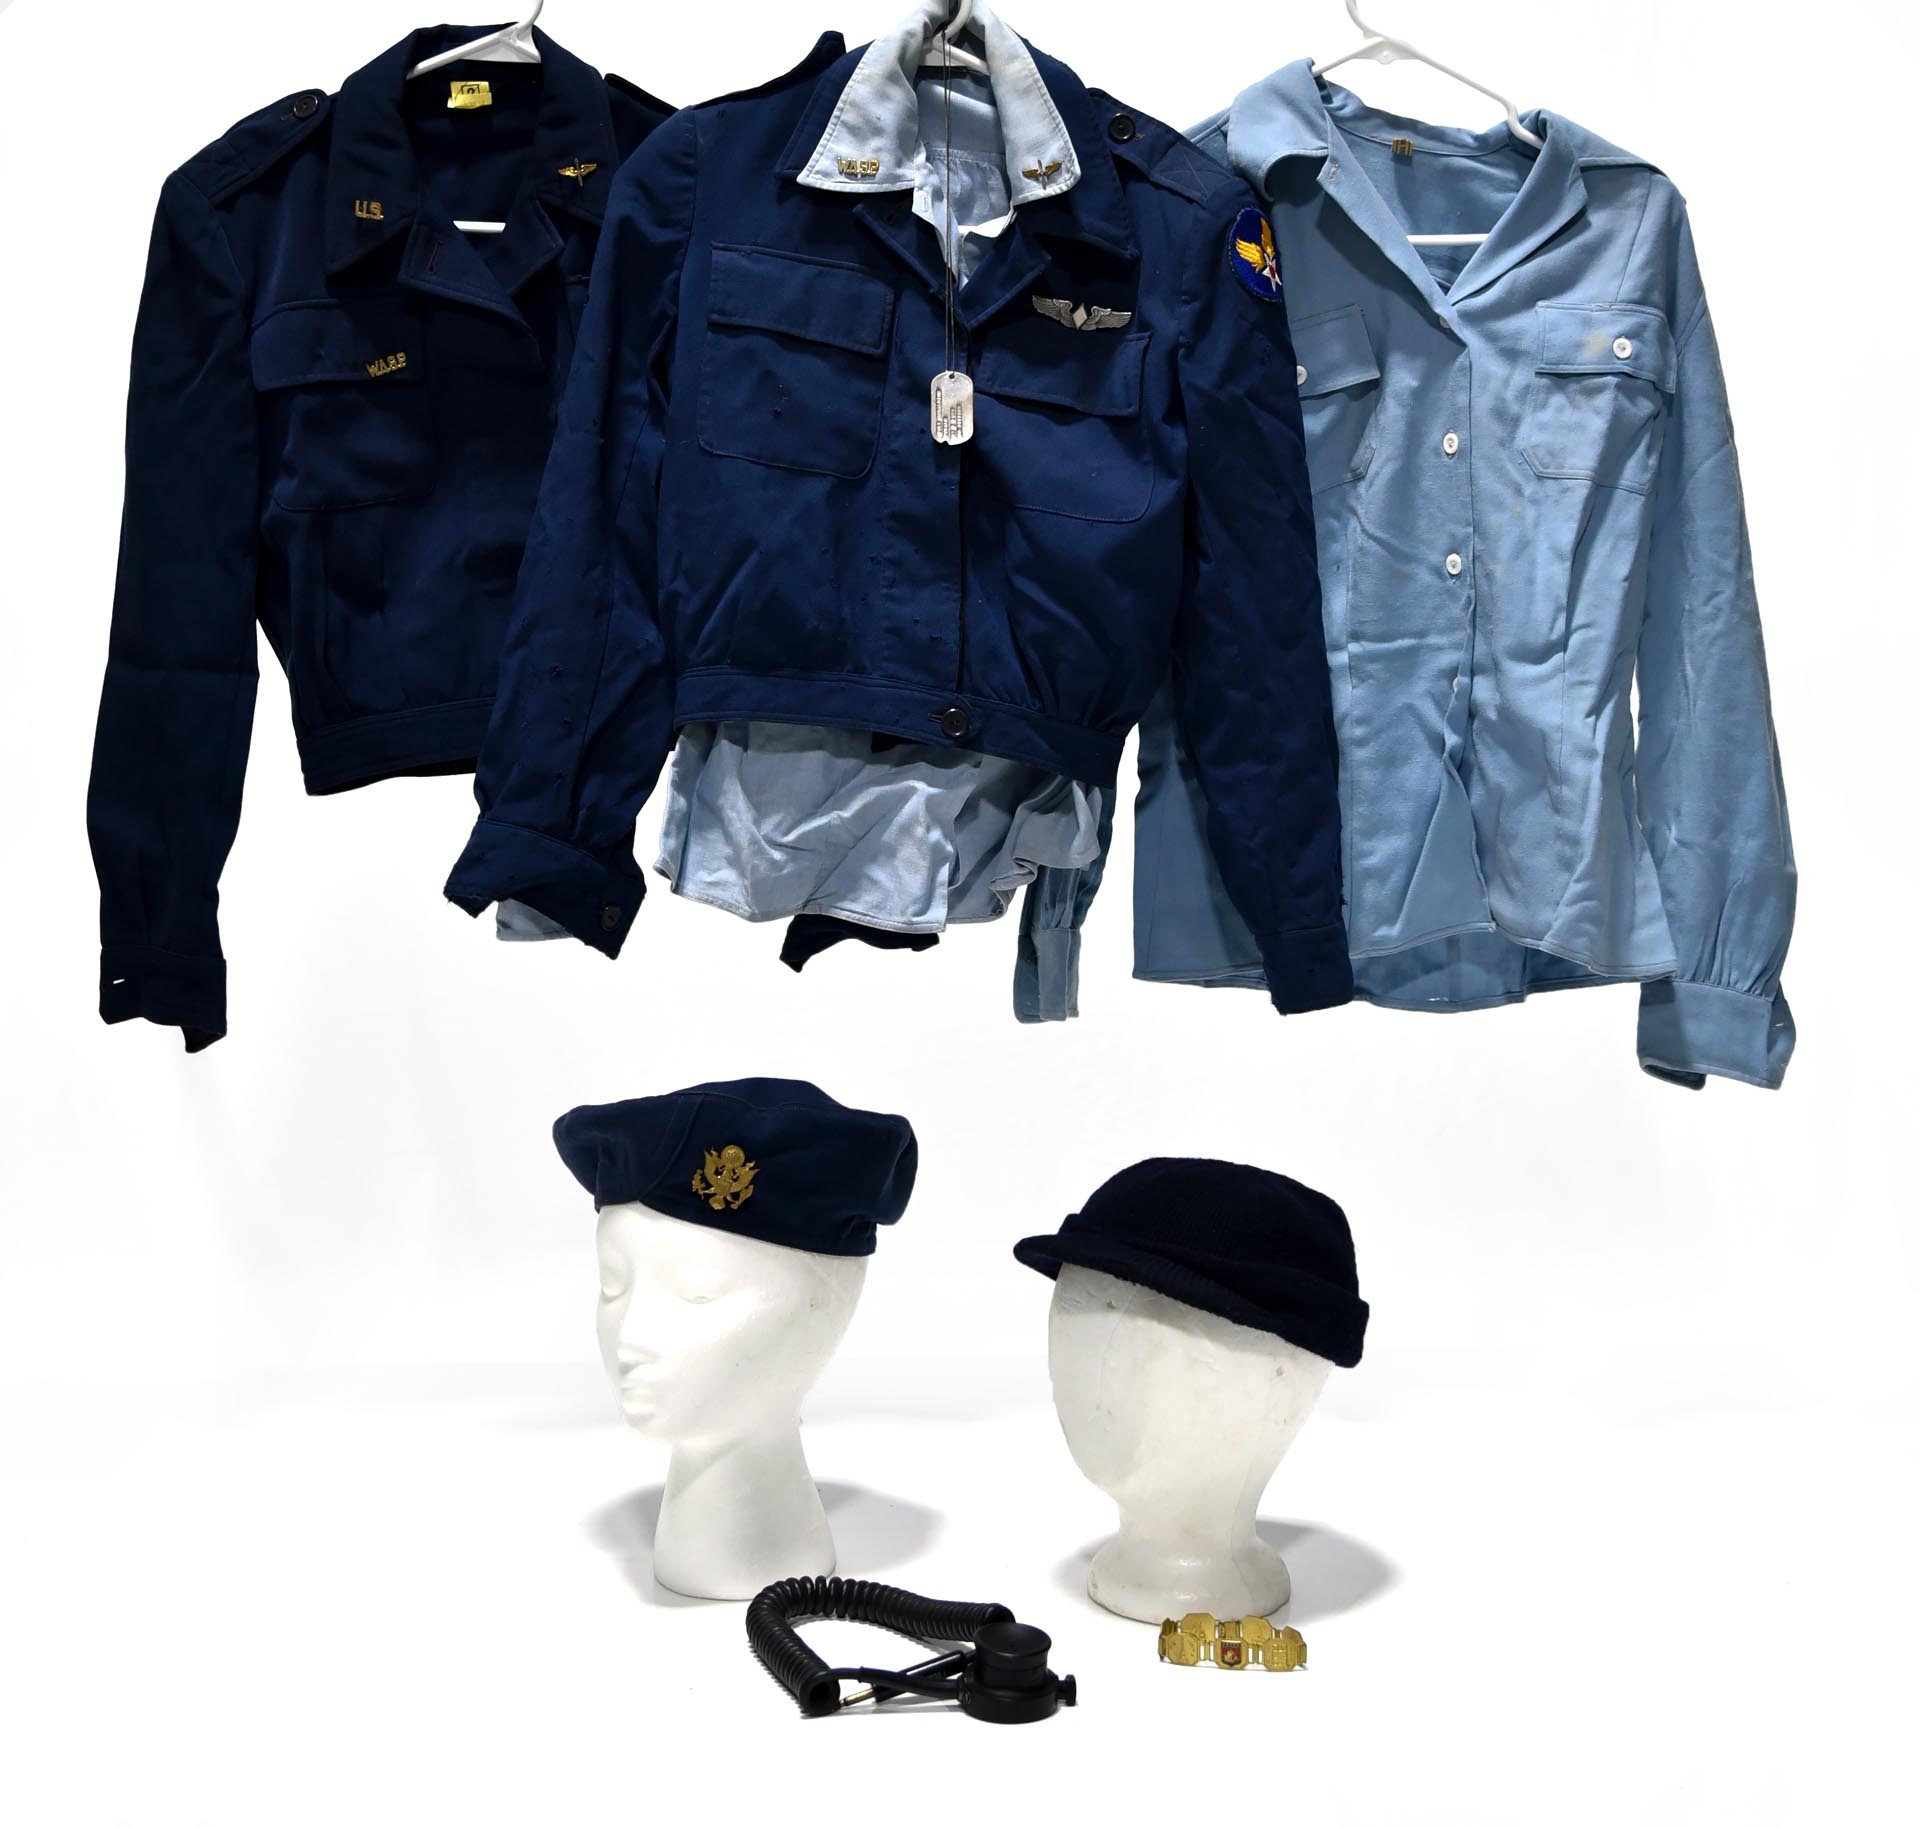 Lot of Women Airforce Service Pilots Pair of Jackets with Shirts, Caps, Microphone and Bracelet